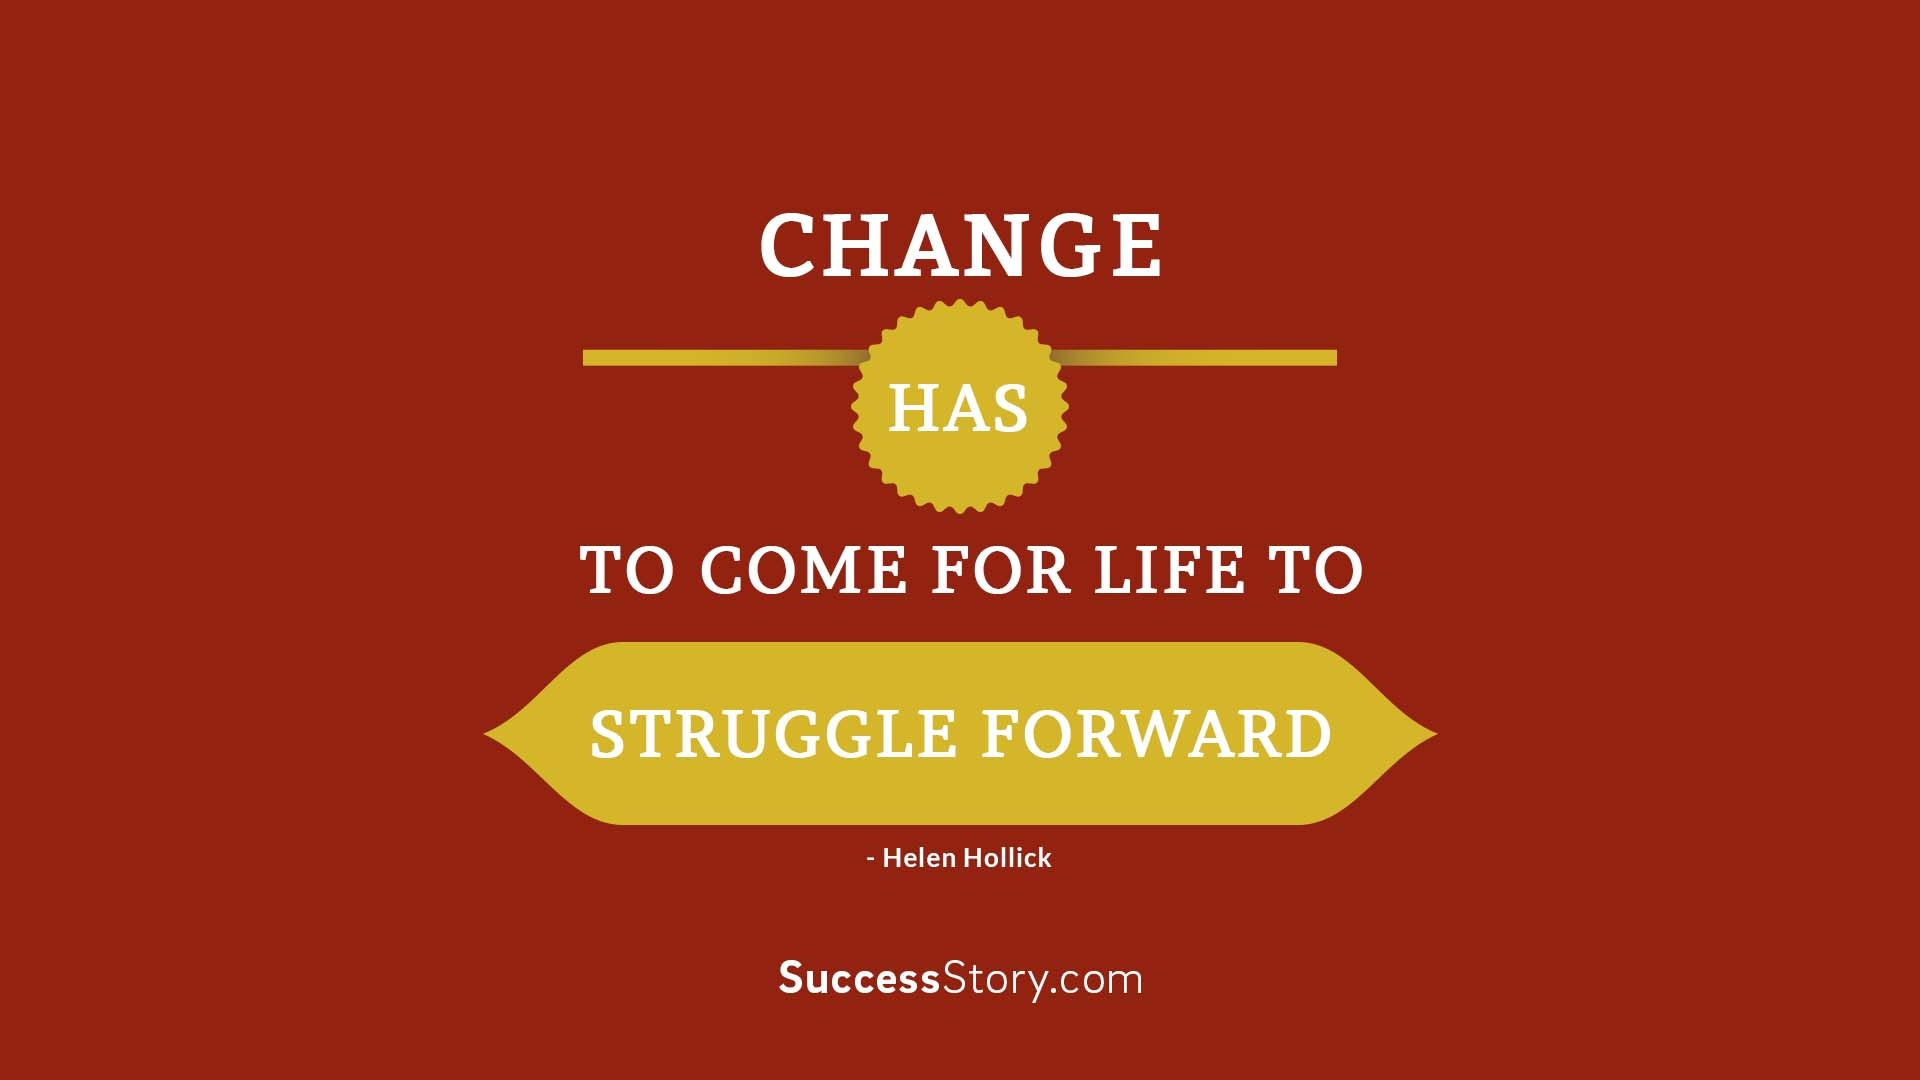 Change has to